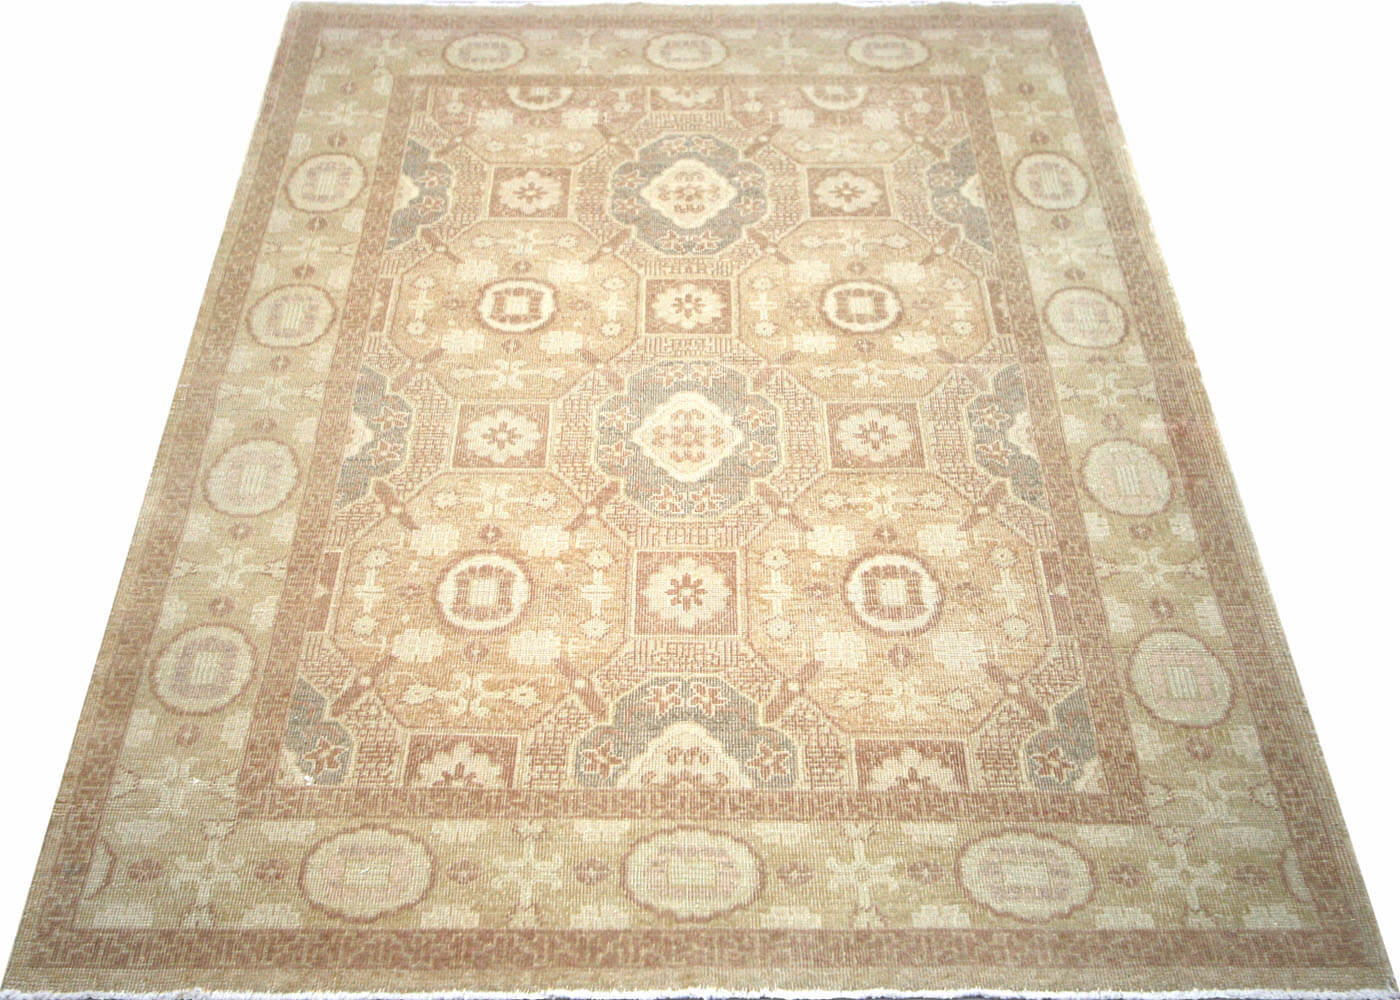 "Recently Woven Egyptian Khotan Rug - 5'0"" x 7'3"""